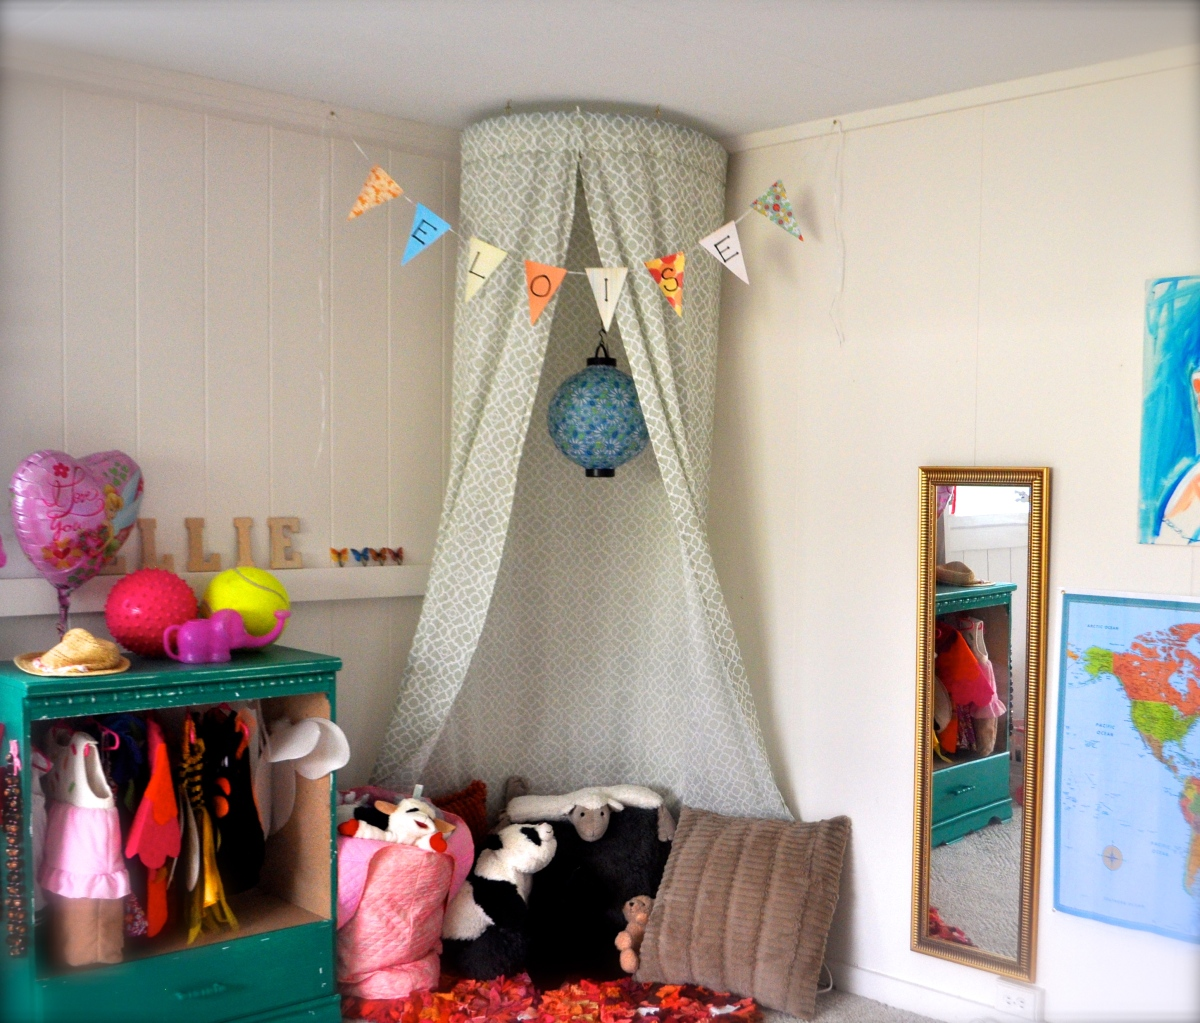 5 minute, no-sew Kid's Canopy!